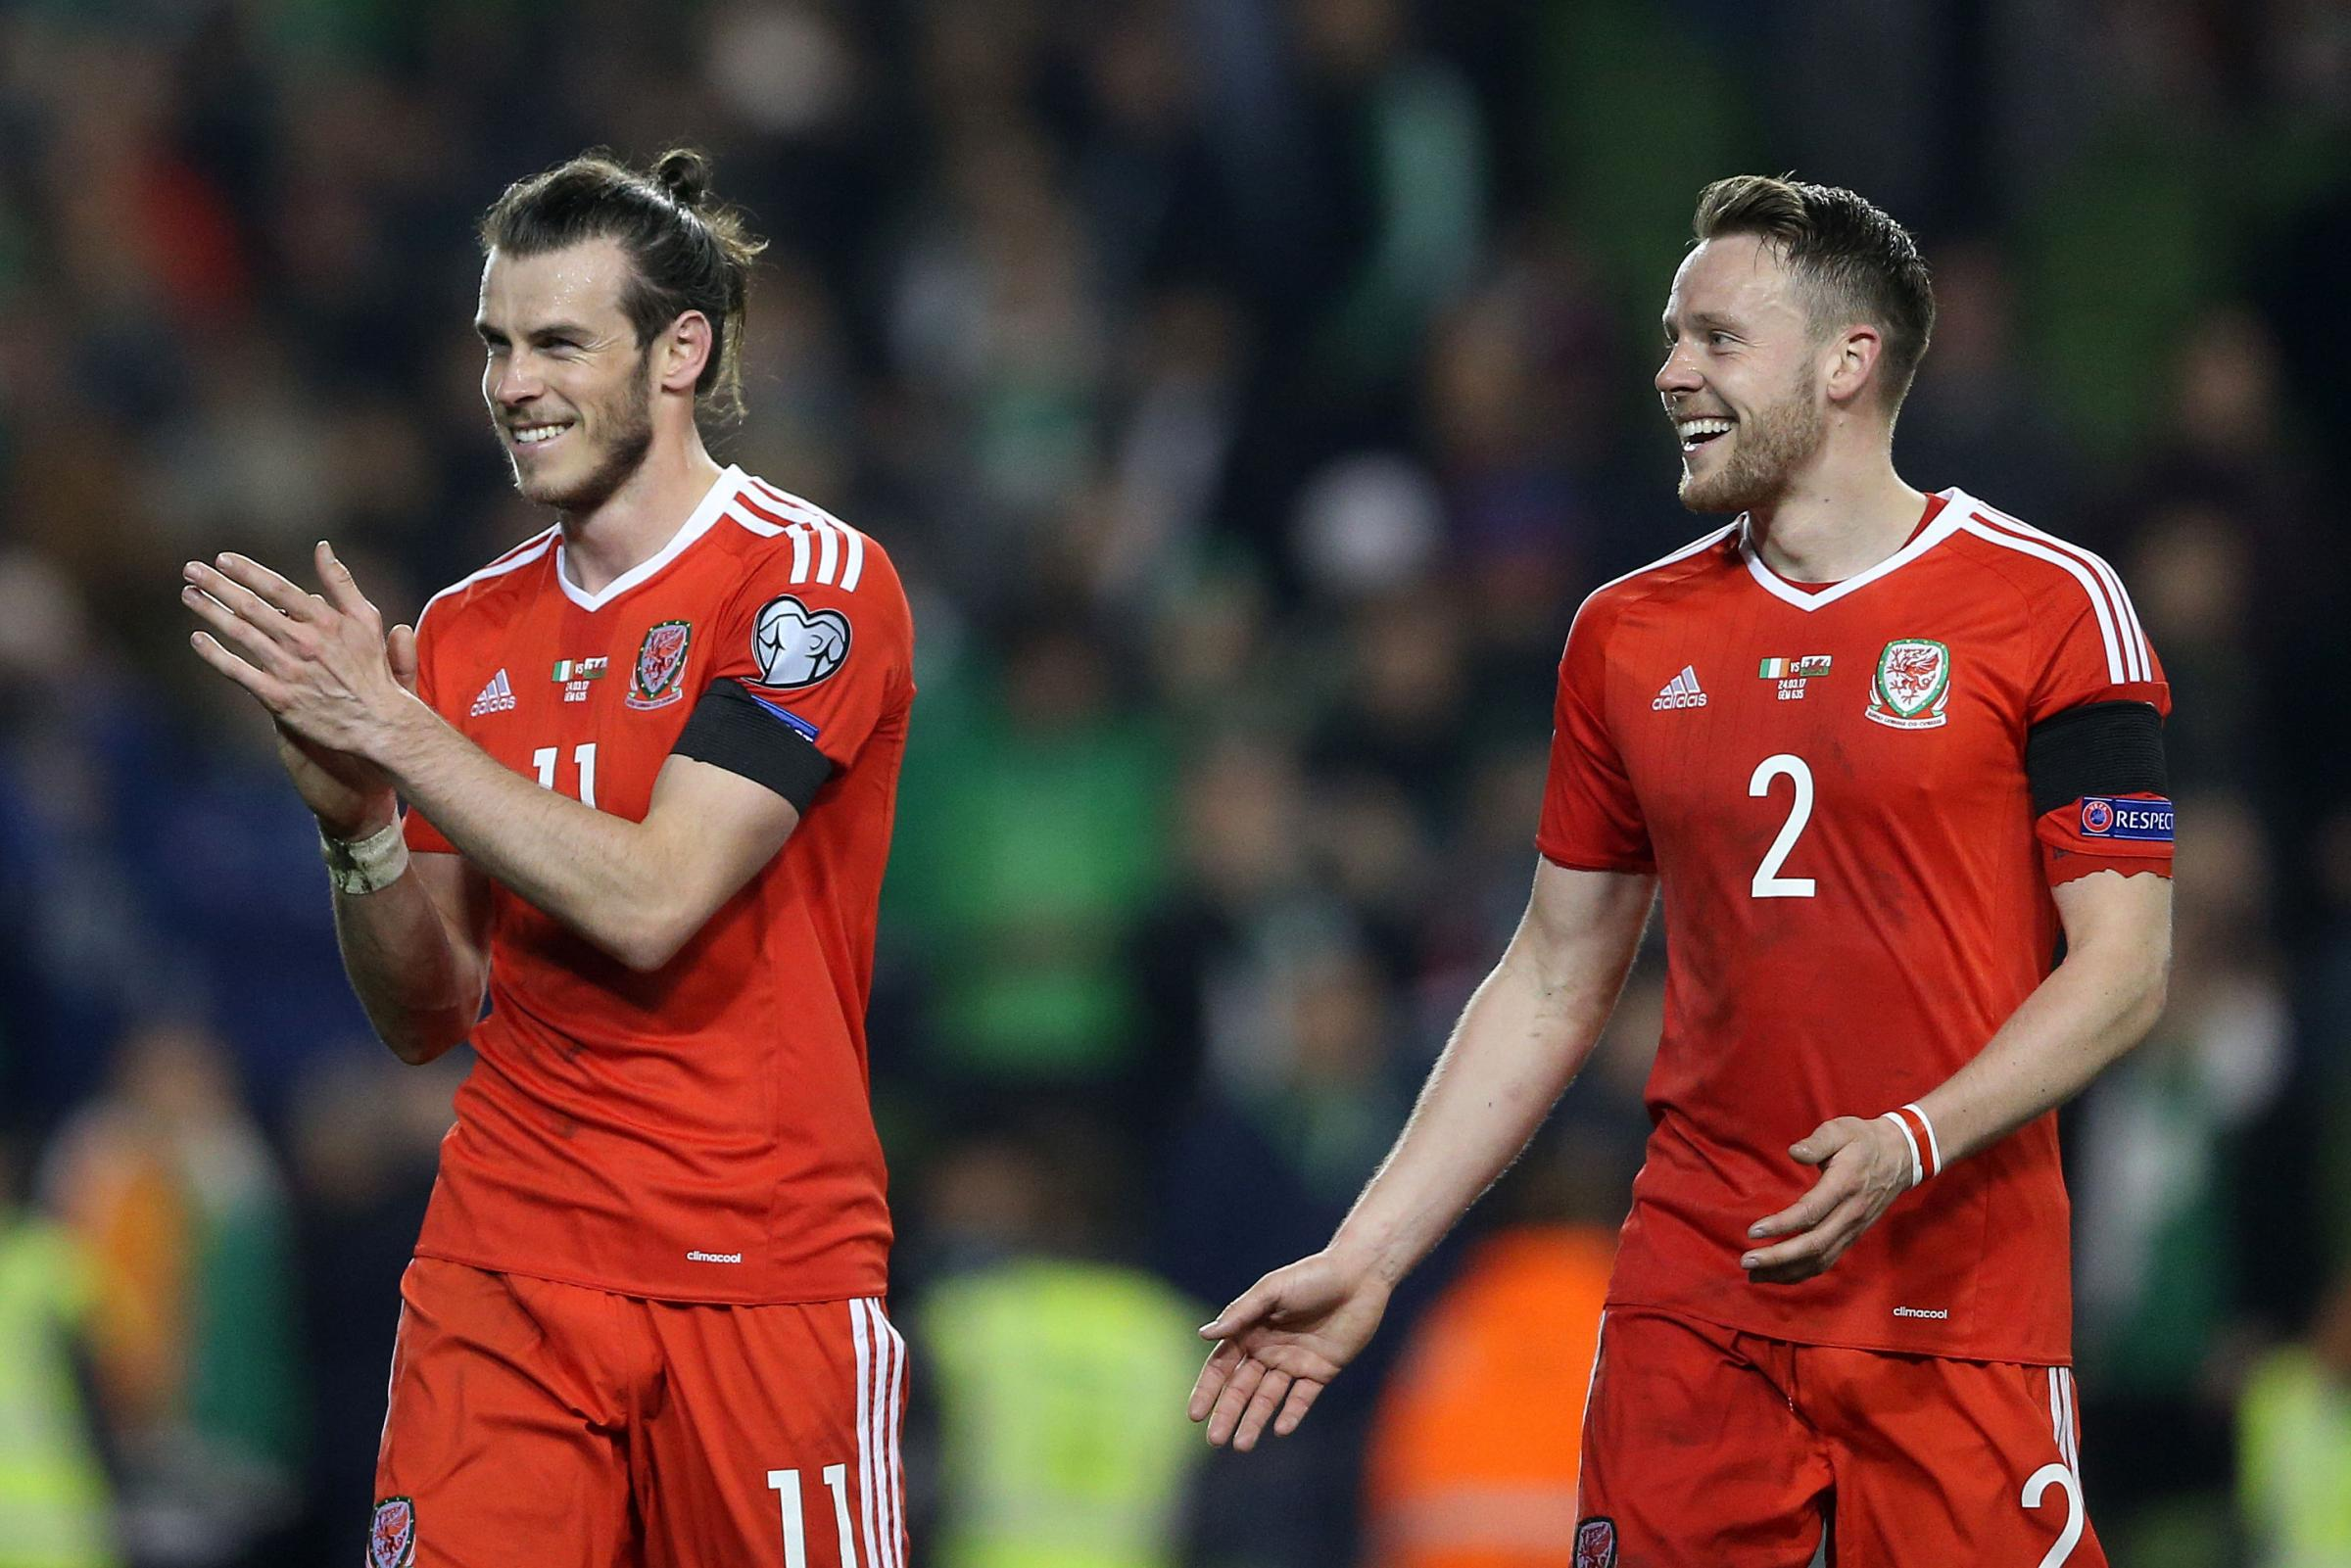 POSITIVE: Wales' Gareth Bale and Chris Gunter after Friday's draw against Ireland in Dublin